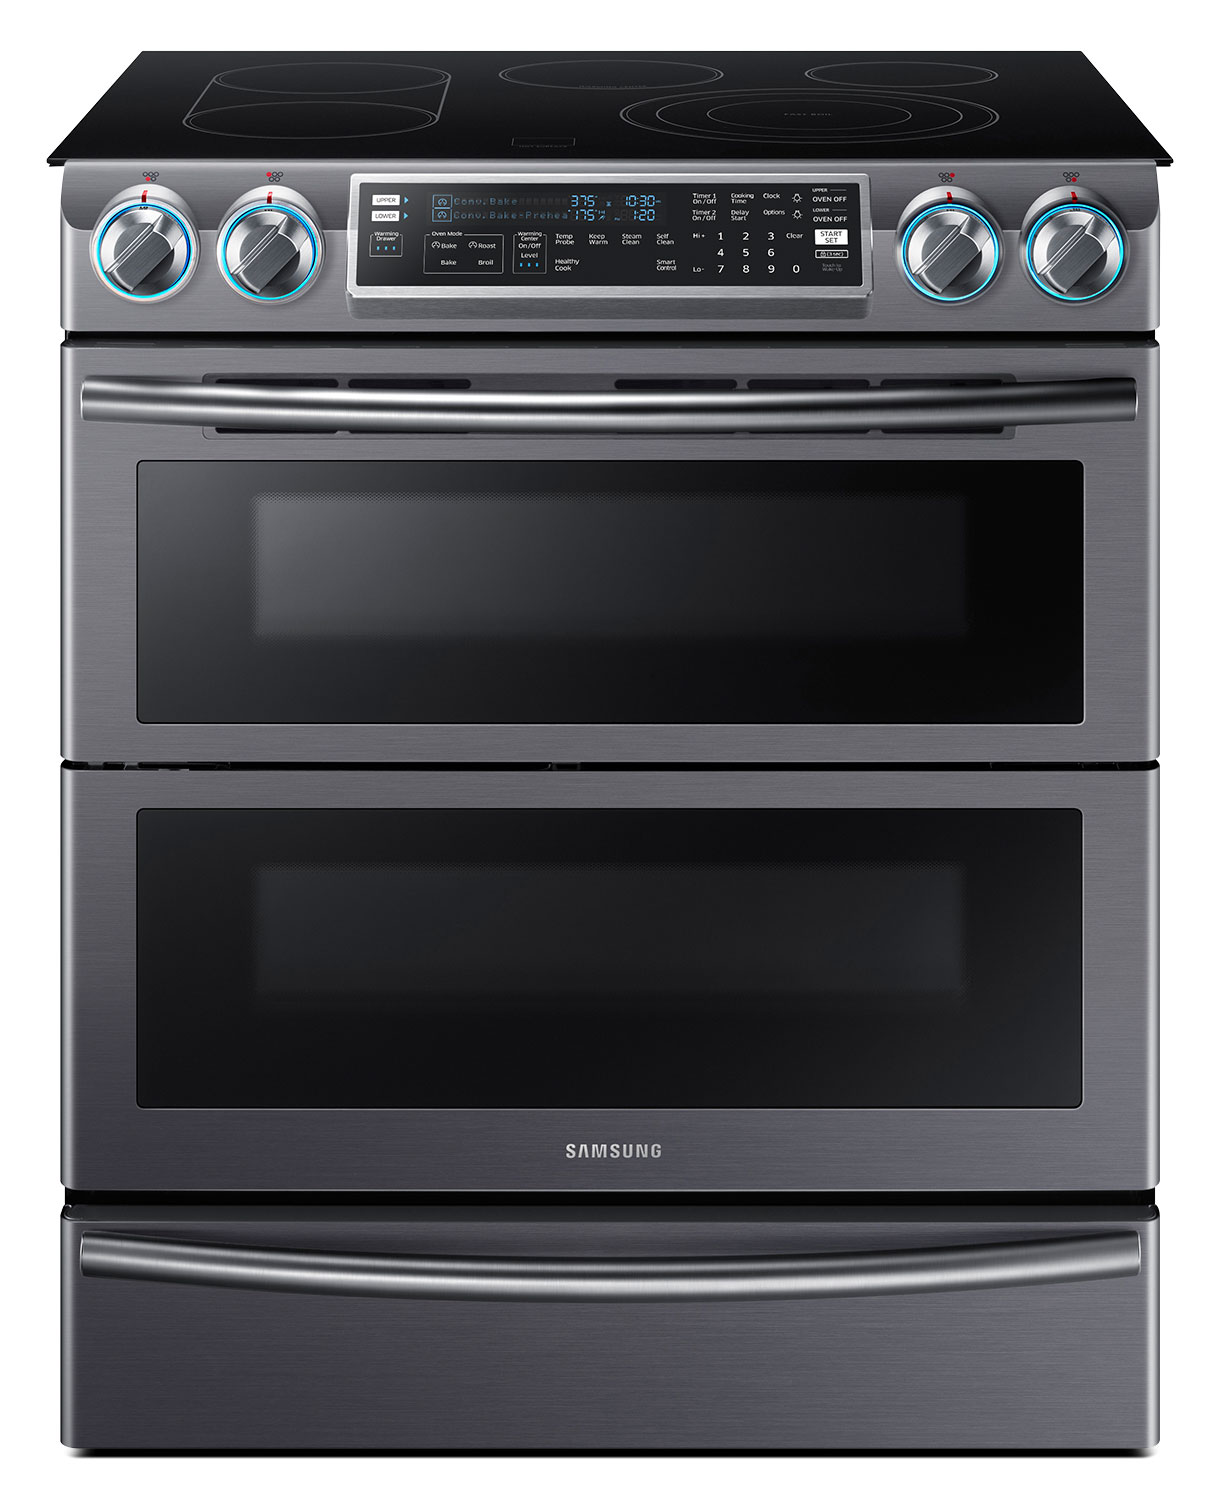 Samsung 5.8 Cu. Ft. Slide-In Electric Flex Duo™ Range – NE58K9850WG